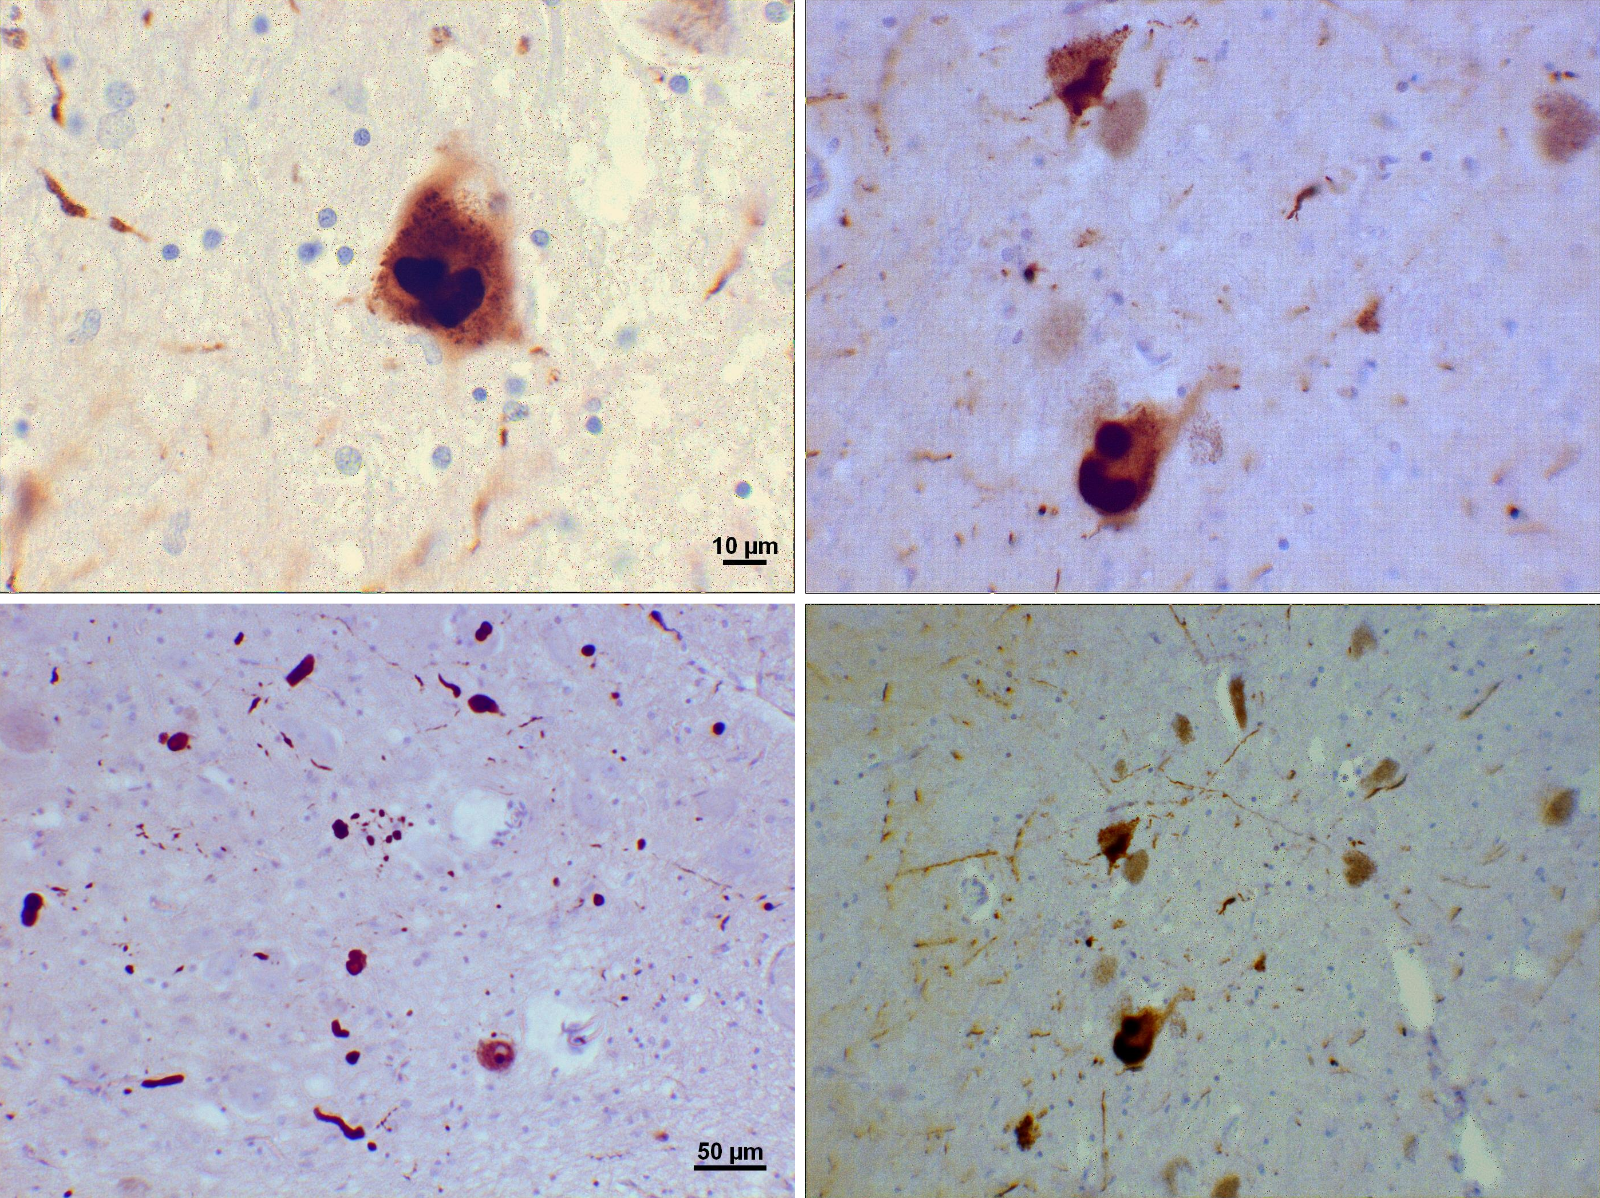 Difference Between Dementia with Lewy Bodies and Parkinson's